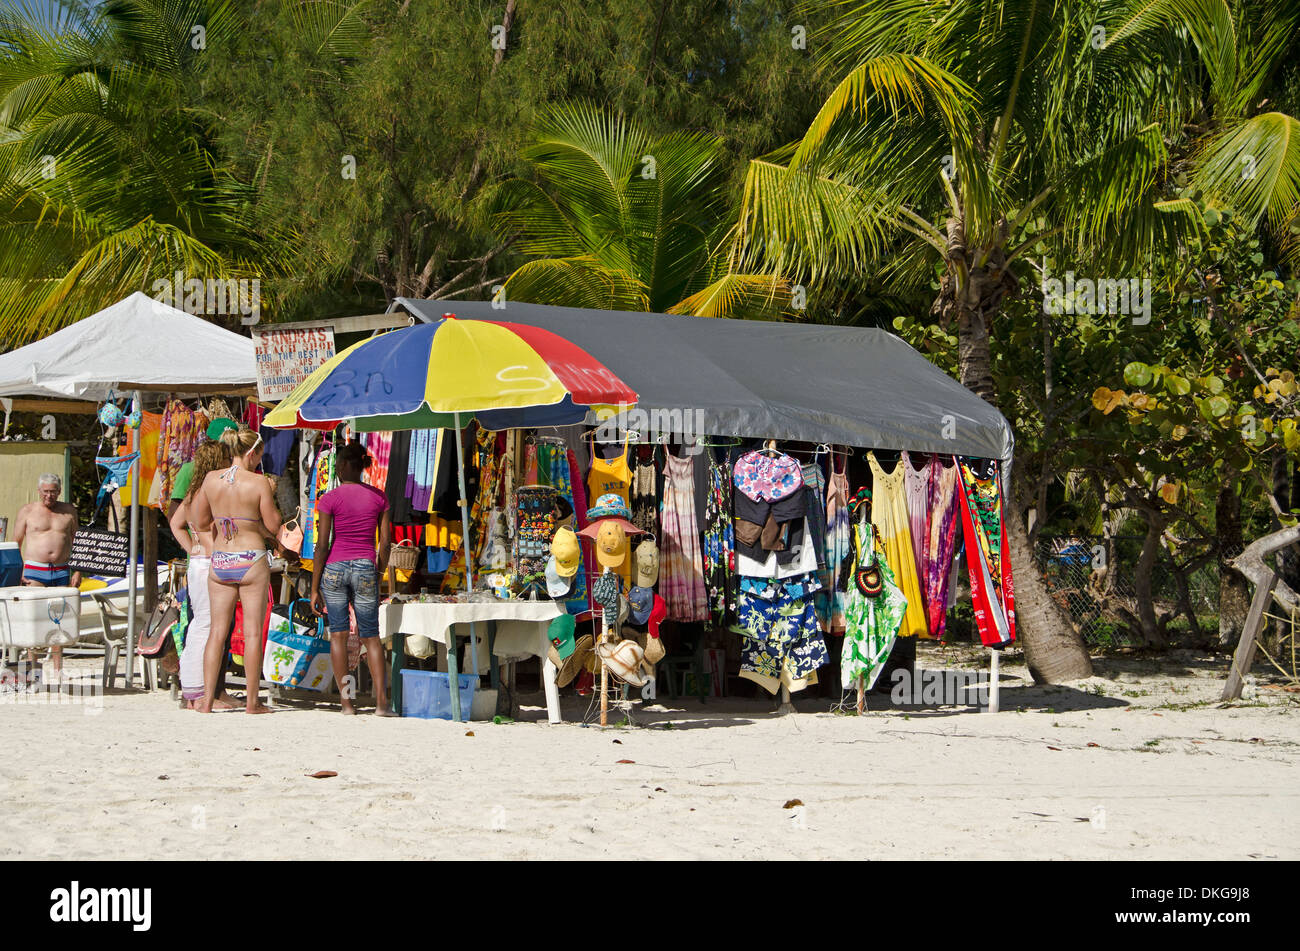 Market stall at beach, Jolly Beach, Antigua, Petites Antilles, dans les Caraïbes, l'Amérique Photo Stock